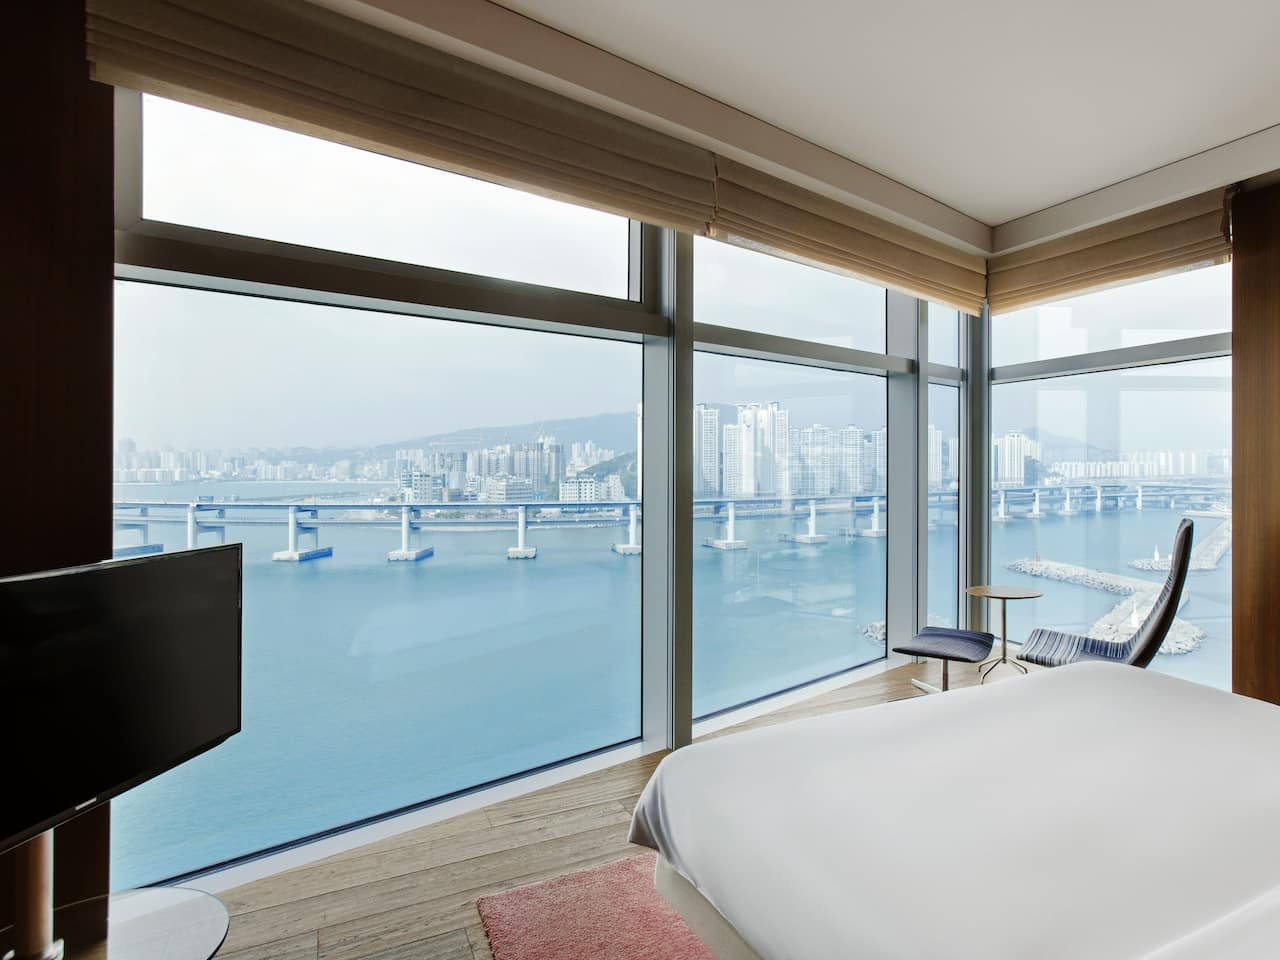 Busan Hotel Executive Marina Suite Bedroom